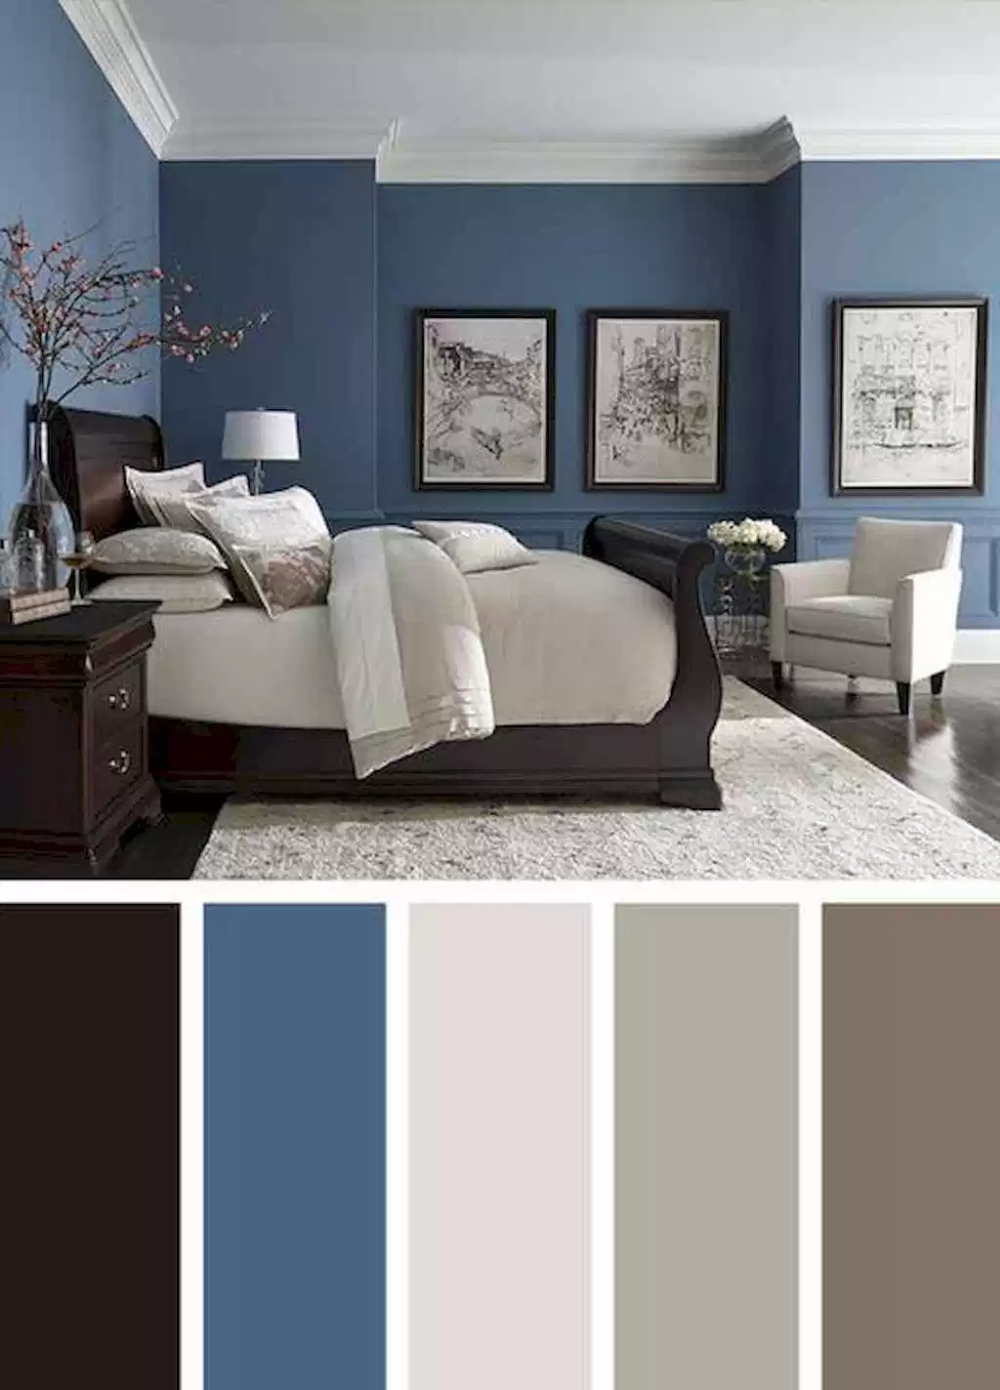 61 Simple Bedroom Decorating Ideas With Beautiful Color Bedroom